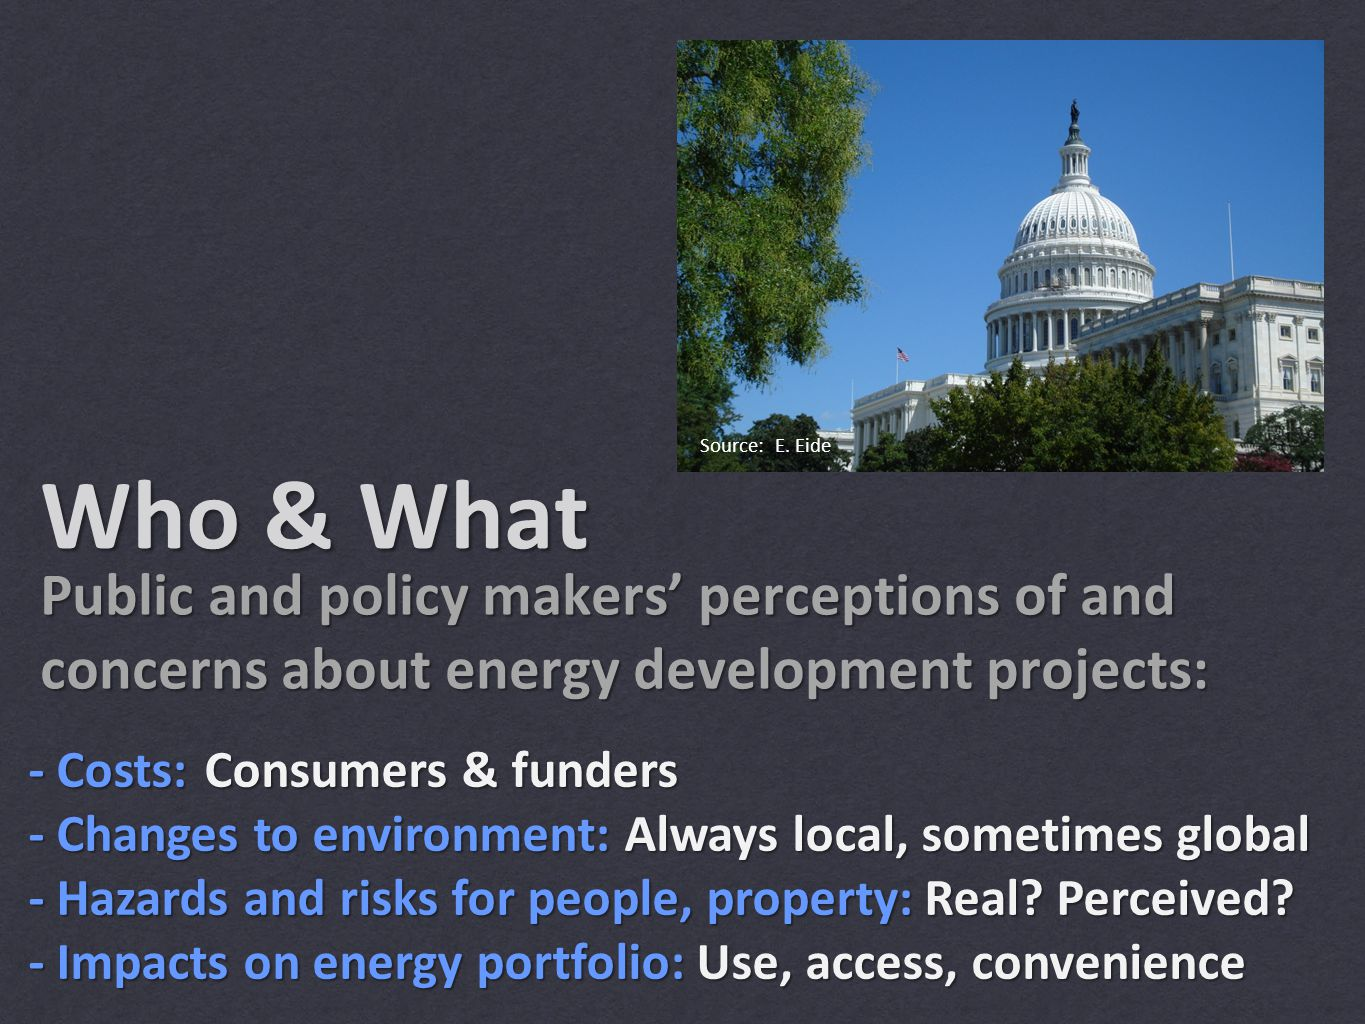 Who & What Public and policy makers' perceptions of and concerns about energy development projects: - Costs: - Changes to environment: - Hazards and risks for people, property: - Impacts on energy portfolio: Source: E.